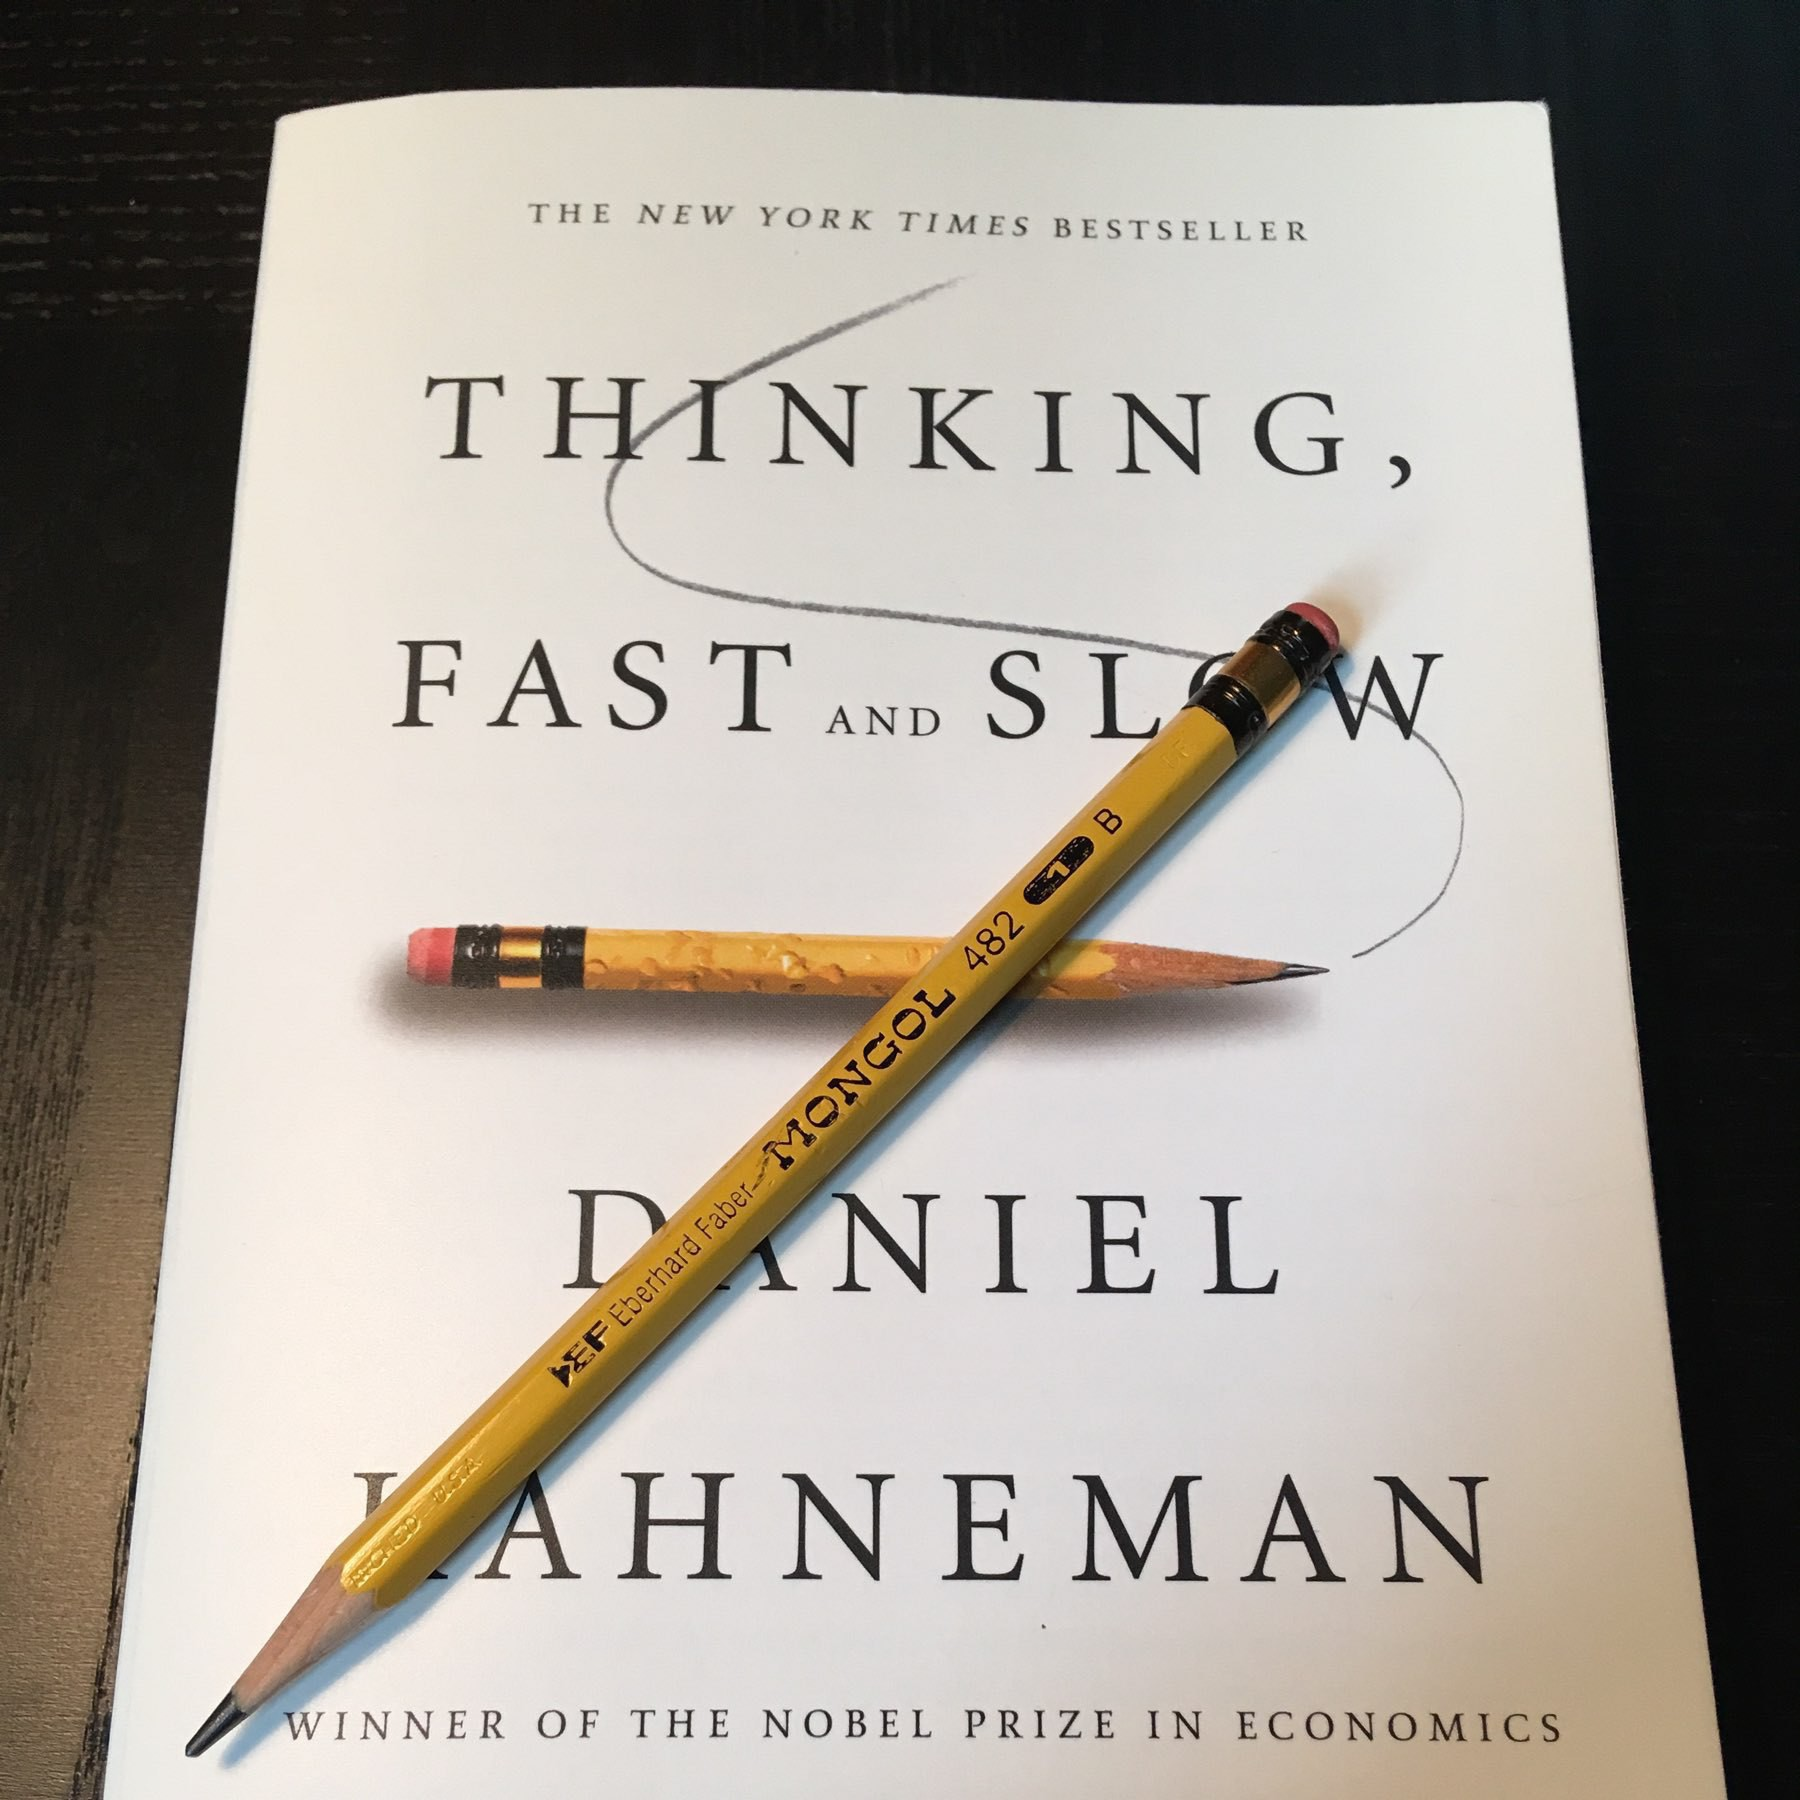 a Mongol pencil resting on the cover of the book Thinking Fast and Slow which features a photo of a Mongol pencil